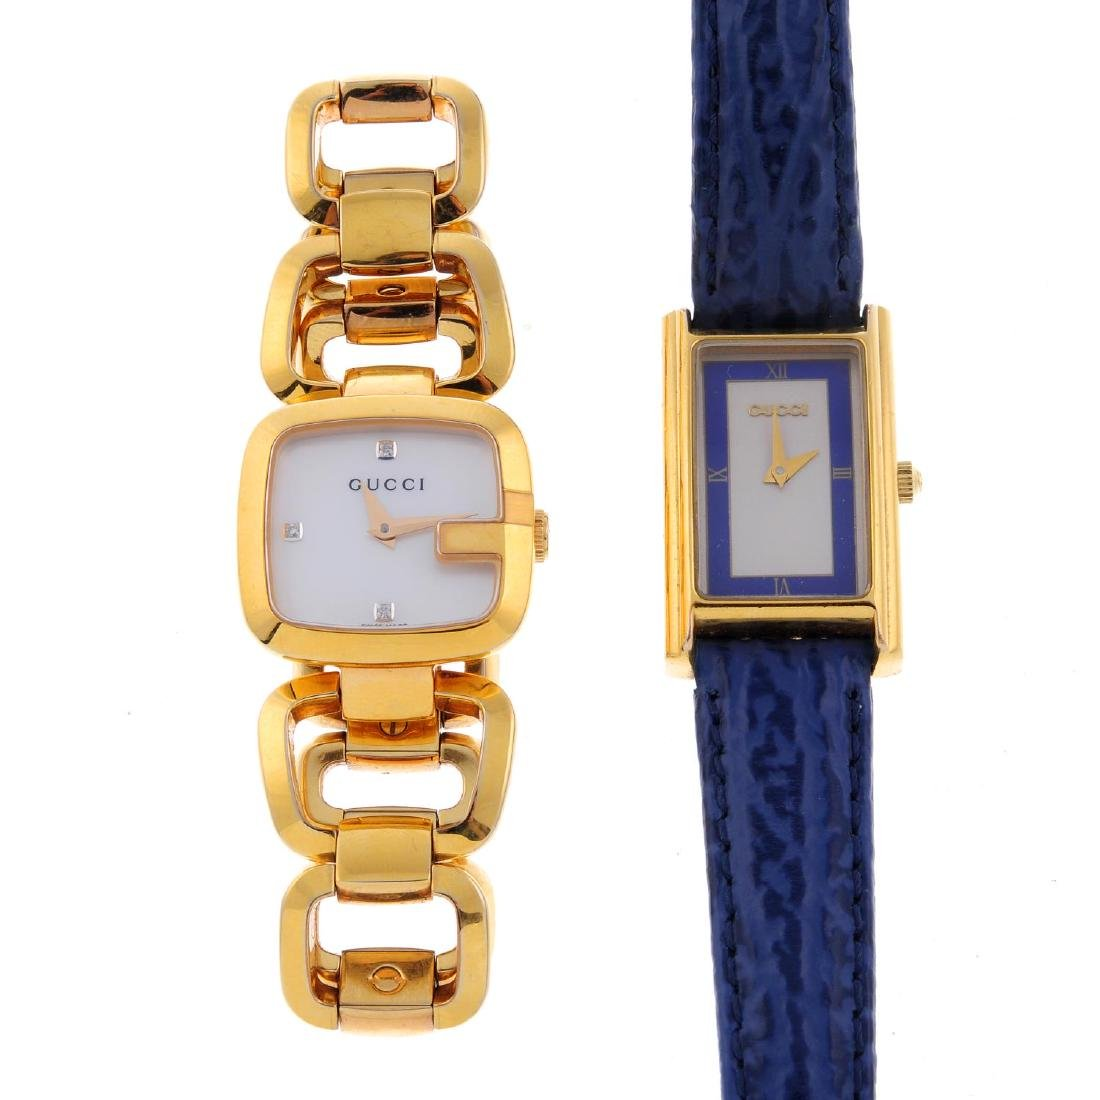 GUCCI - a lady's wrist watch. Gold plated case.